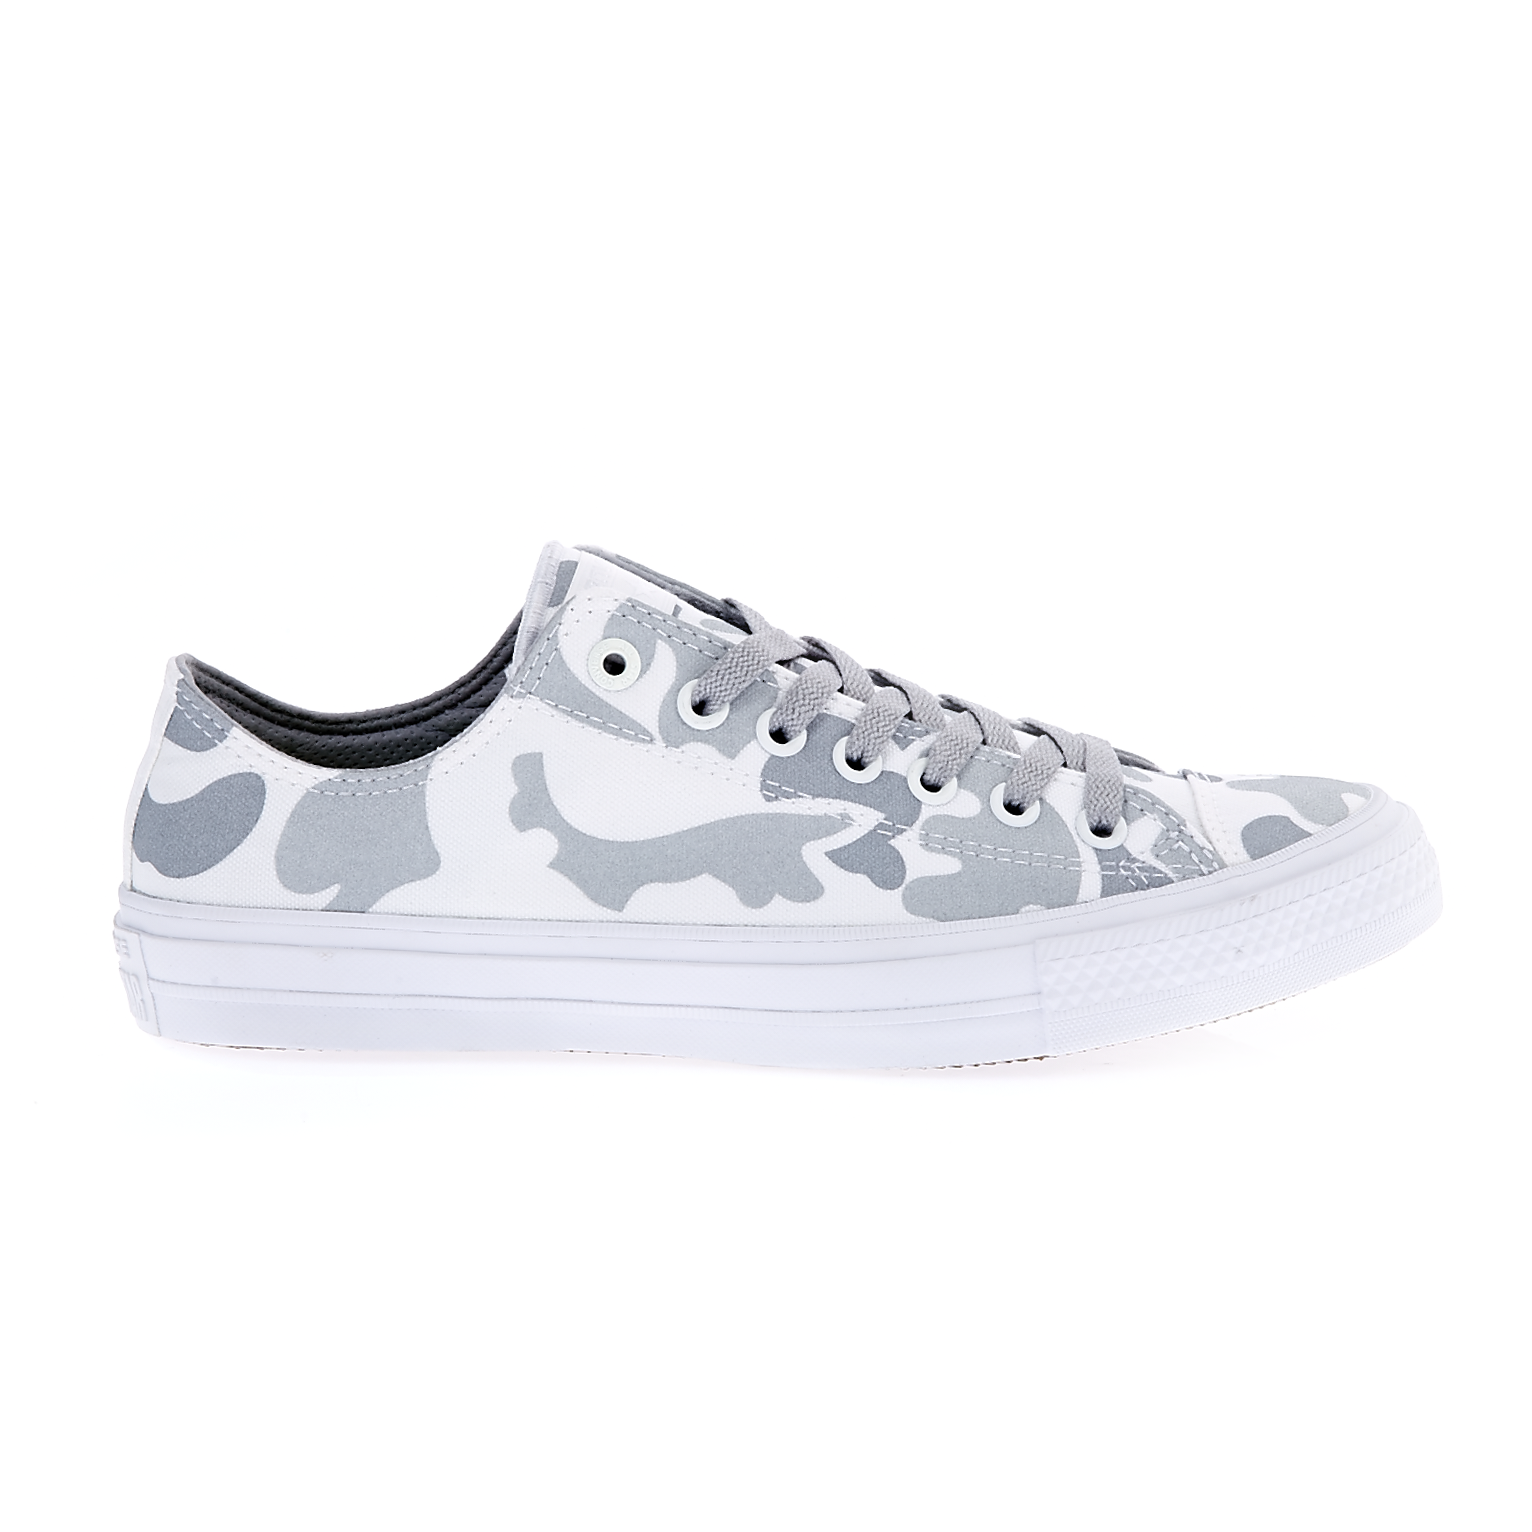 CONVERSE – Unisex παπούτσια Chuck Taylor All Star II Ox λευκά-γκρι